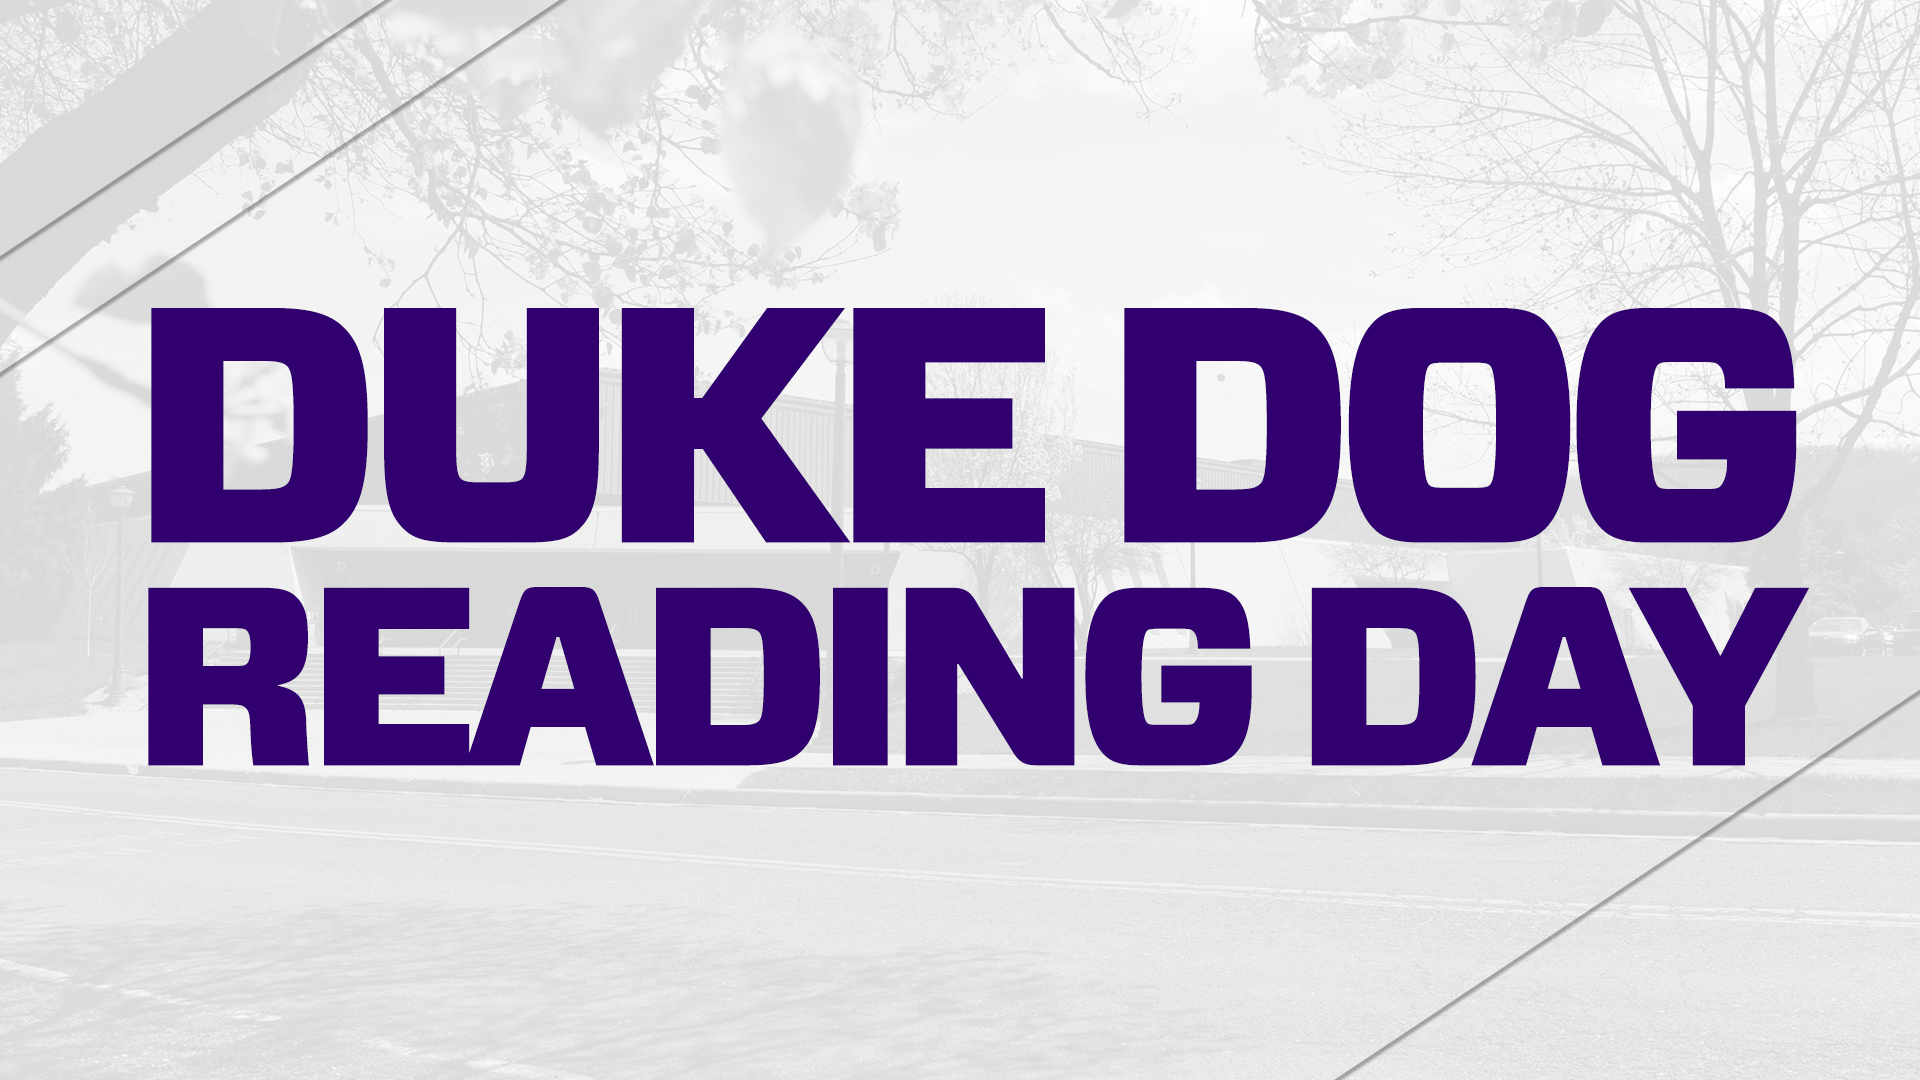 Women's Basketball, Promotions: Game Day Information for Duke Dog Reading Day, Feb. 25)